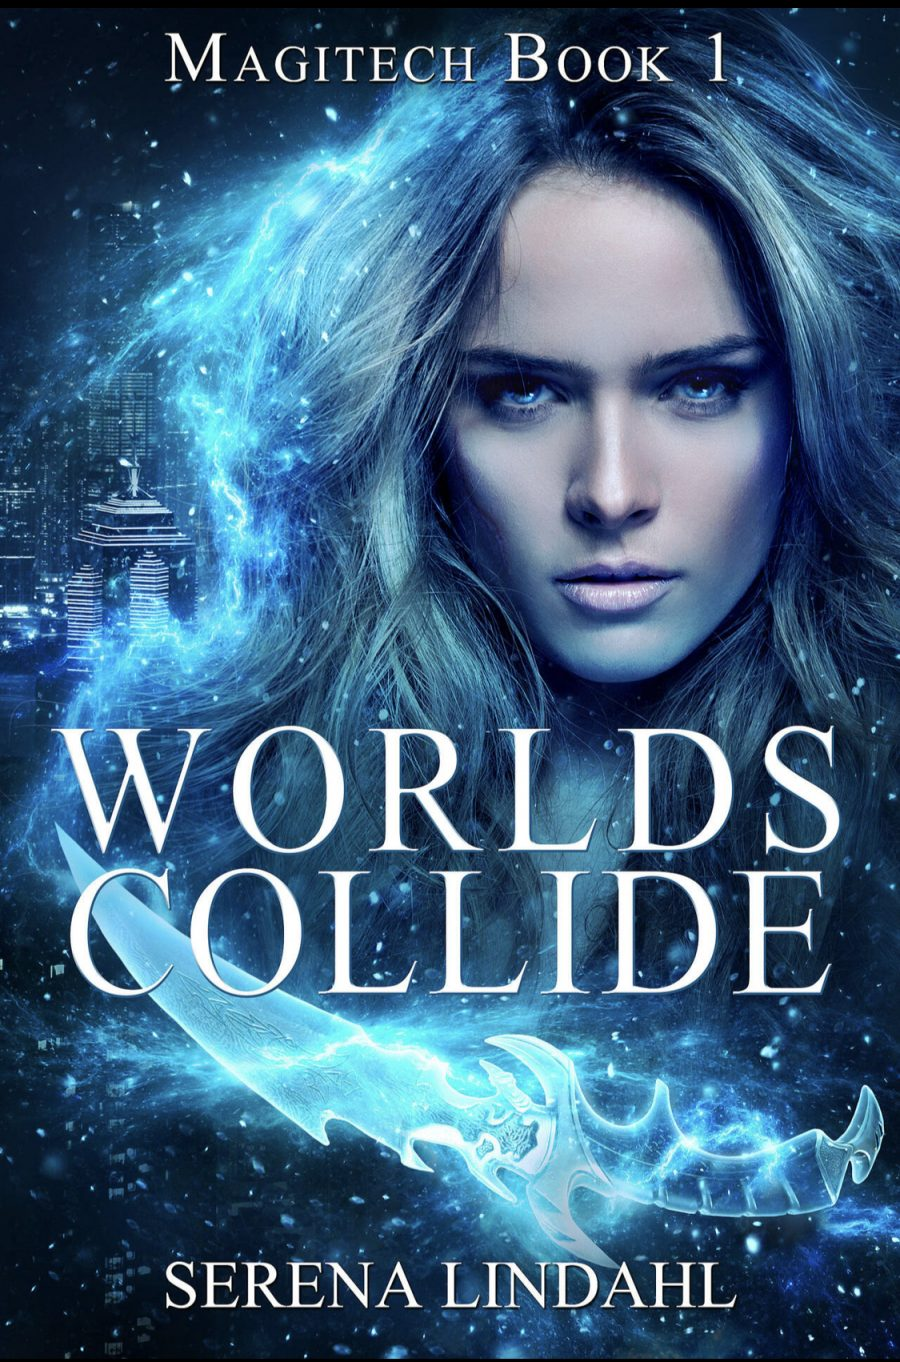 Worlds Collide (Magitech - Book 1) by Serena Lindahl - A Book Review #BookReview #UrbanFantasy #UF #SeriesComplete #4Stars #KindleUnlimited #KU